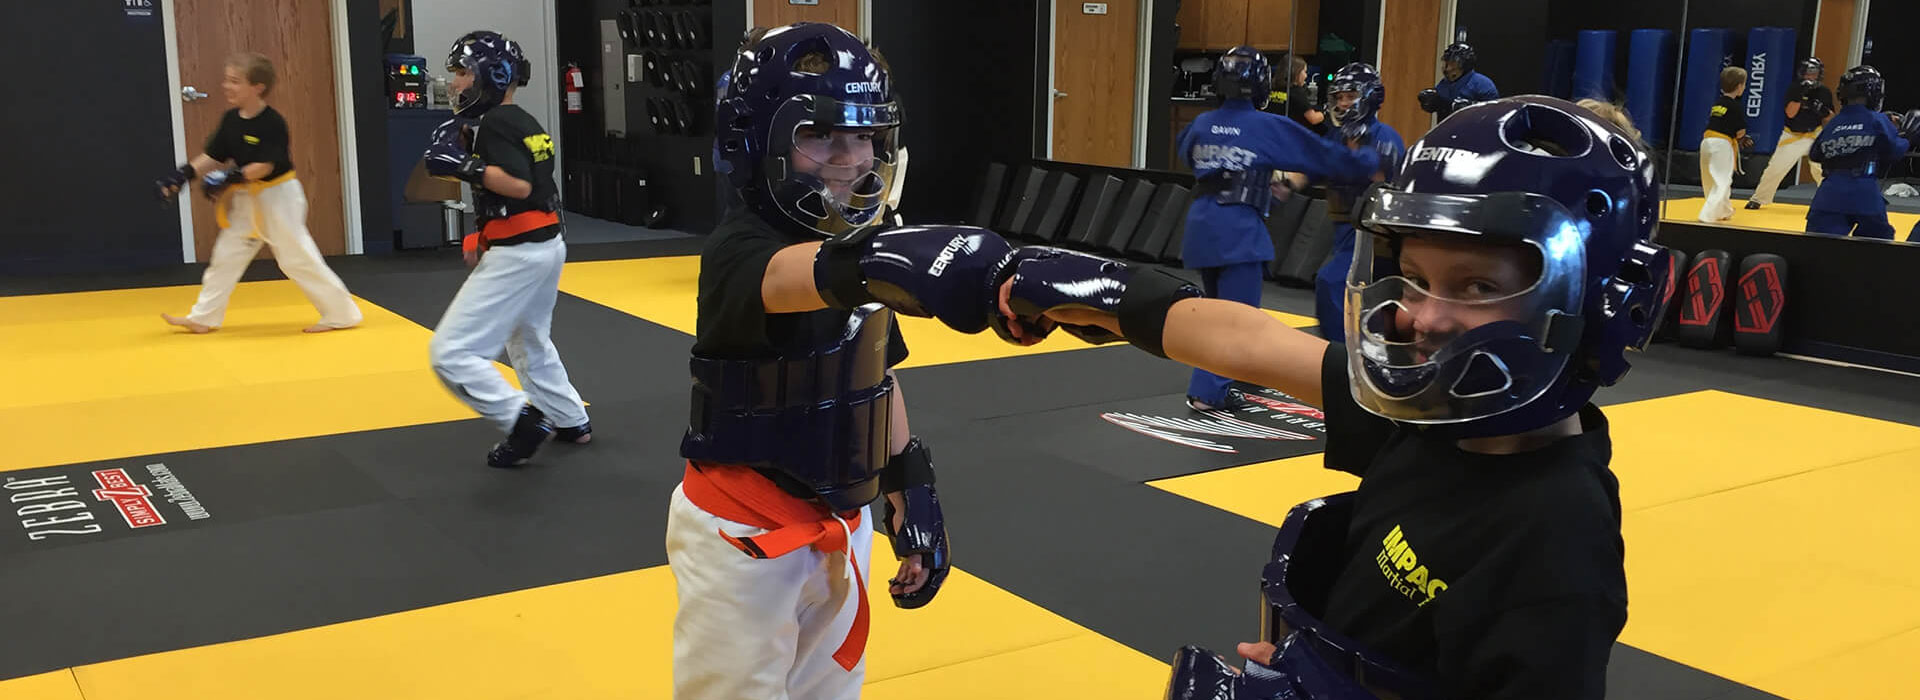 Why Impact Martial Arts Is Ranked One Of The Best Gyms near Oshkosh, WI